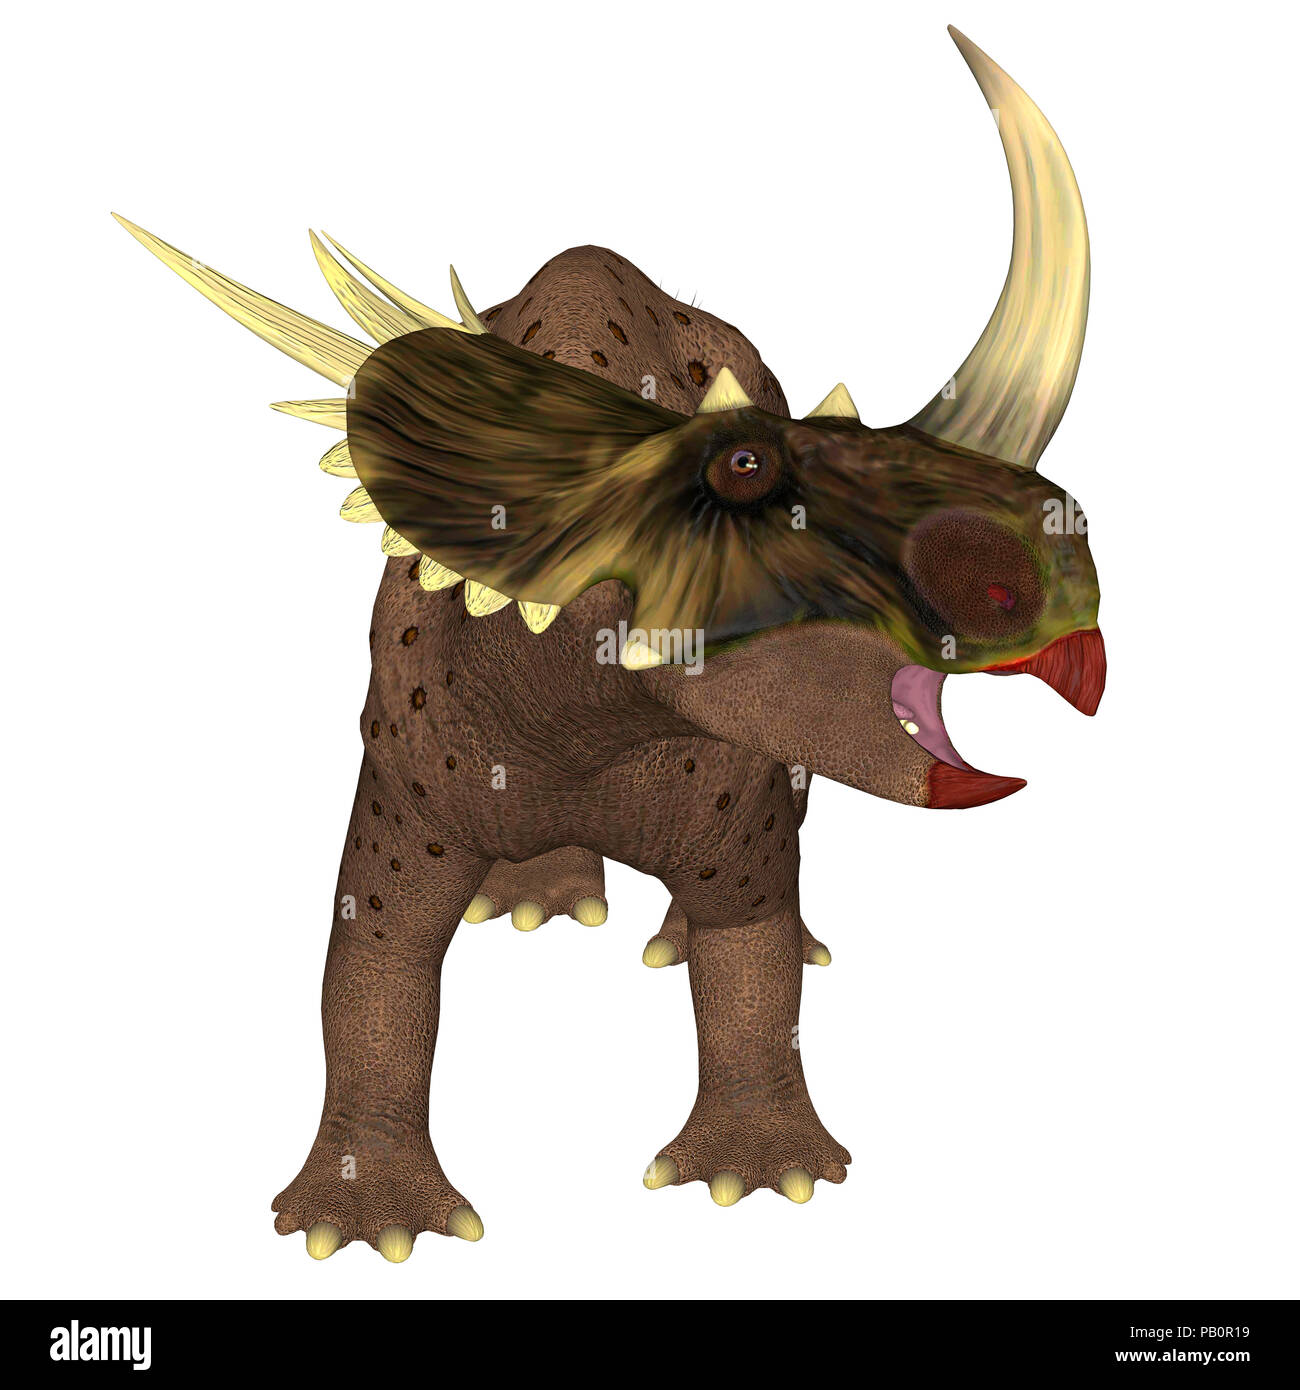 Brown Rubeosaurus Dinosaur on White - Rubeosaurus was a herbivorous Ceratopsian dinosaur that lived in North America during the Cretaceous Period. - Stock Image